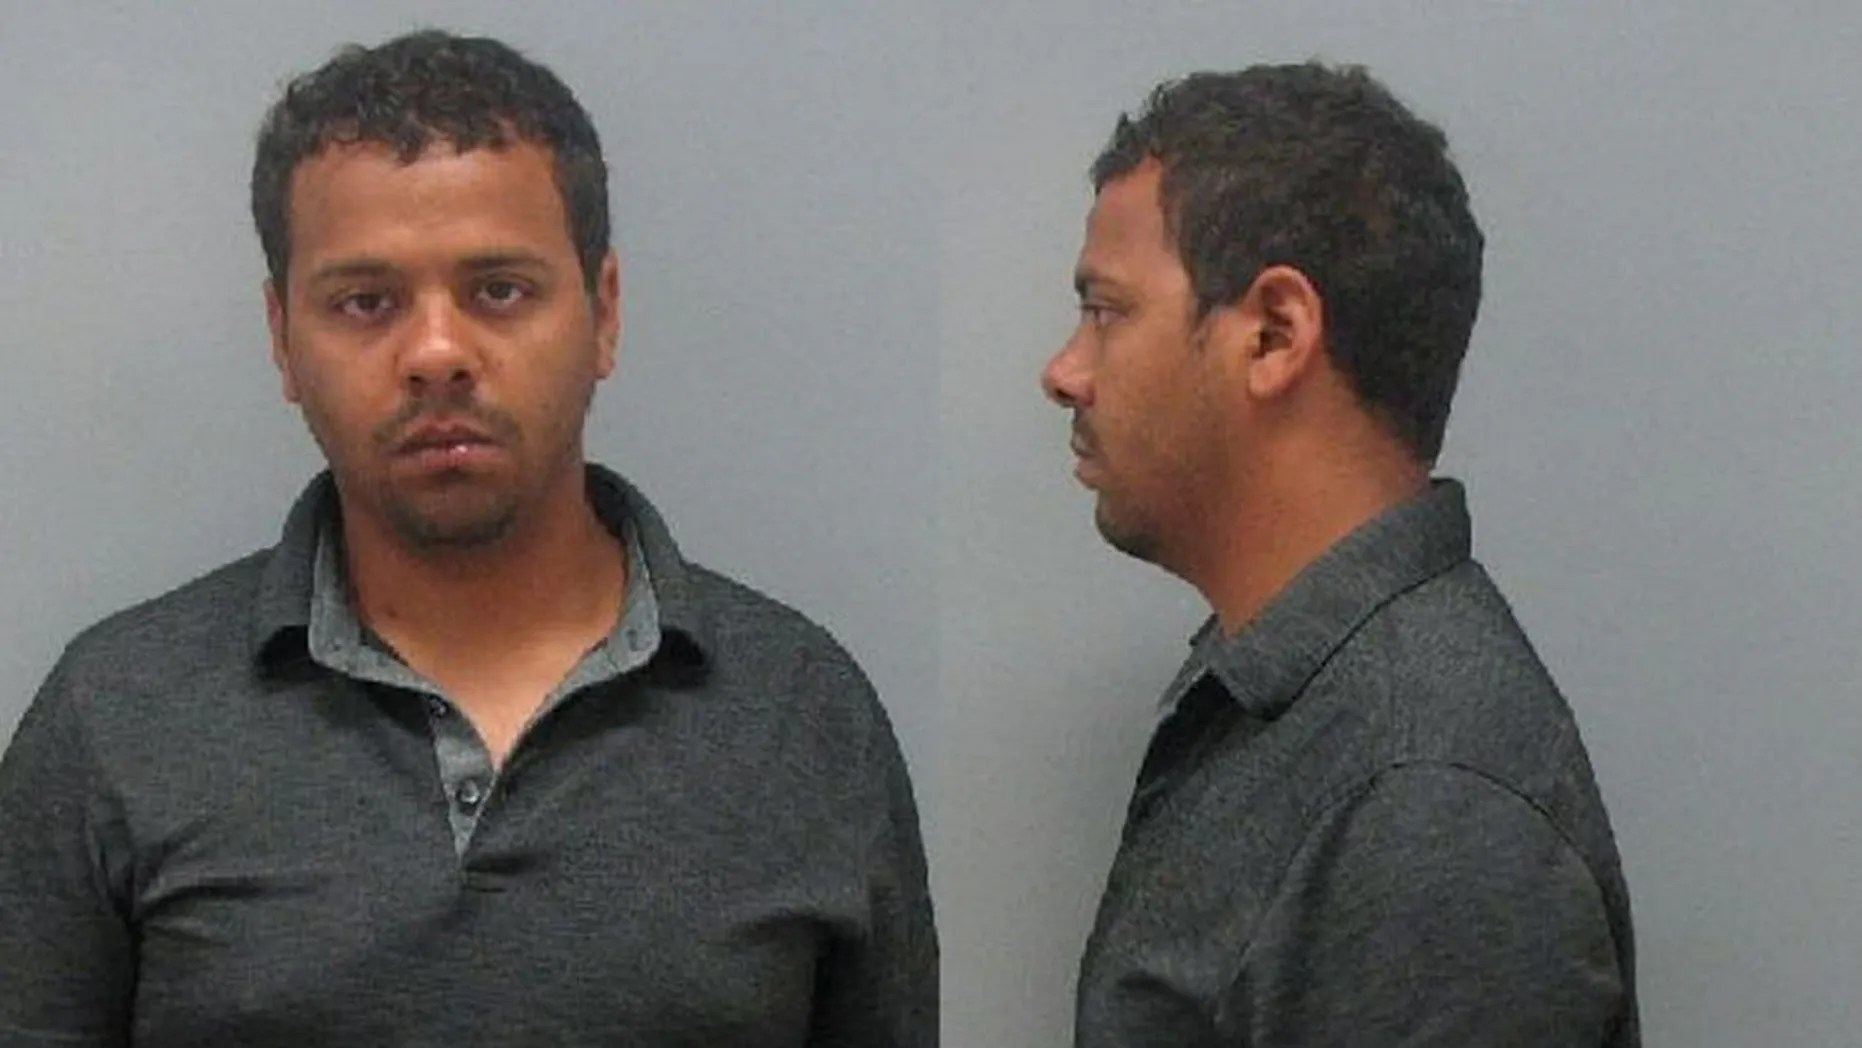 Illinois congressmans staffer arrested for aggravated